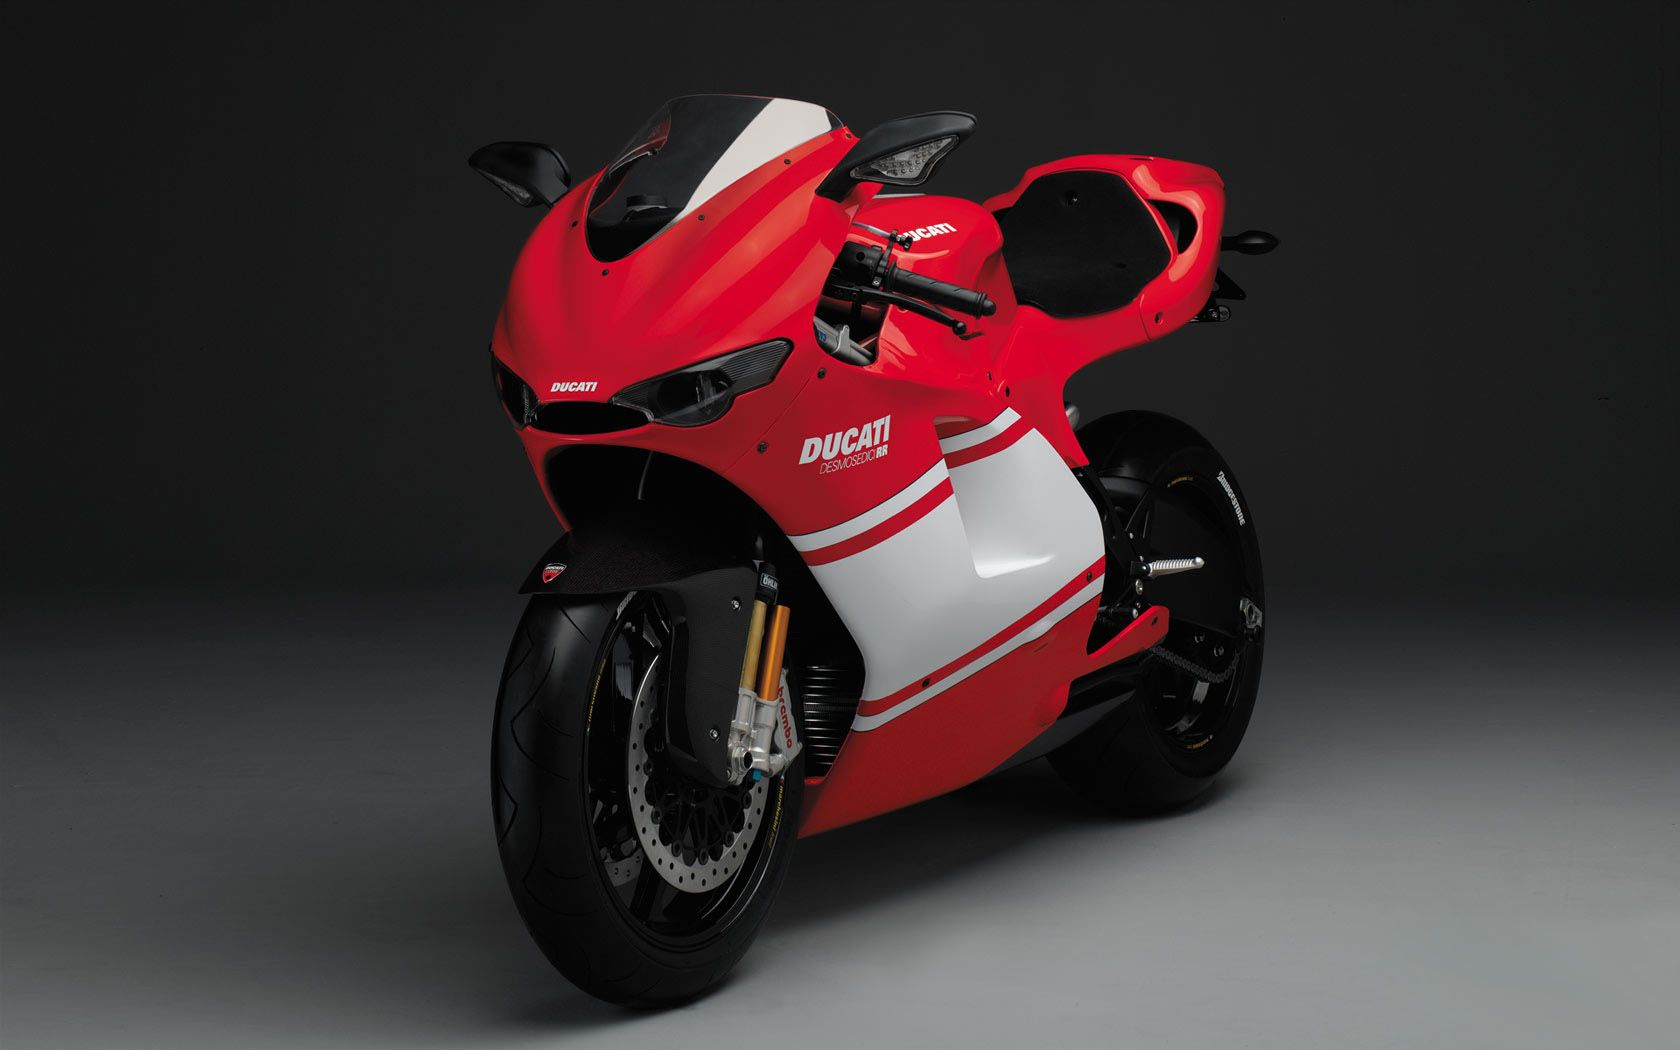 Wallpapers Tagged With DUCATI DUCATI HD Wallpapers Page ...